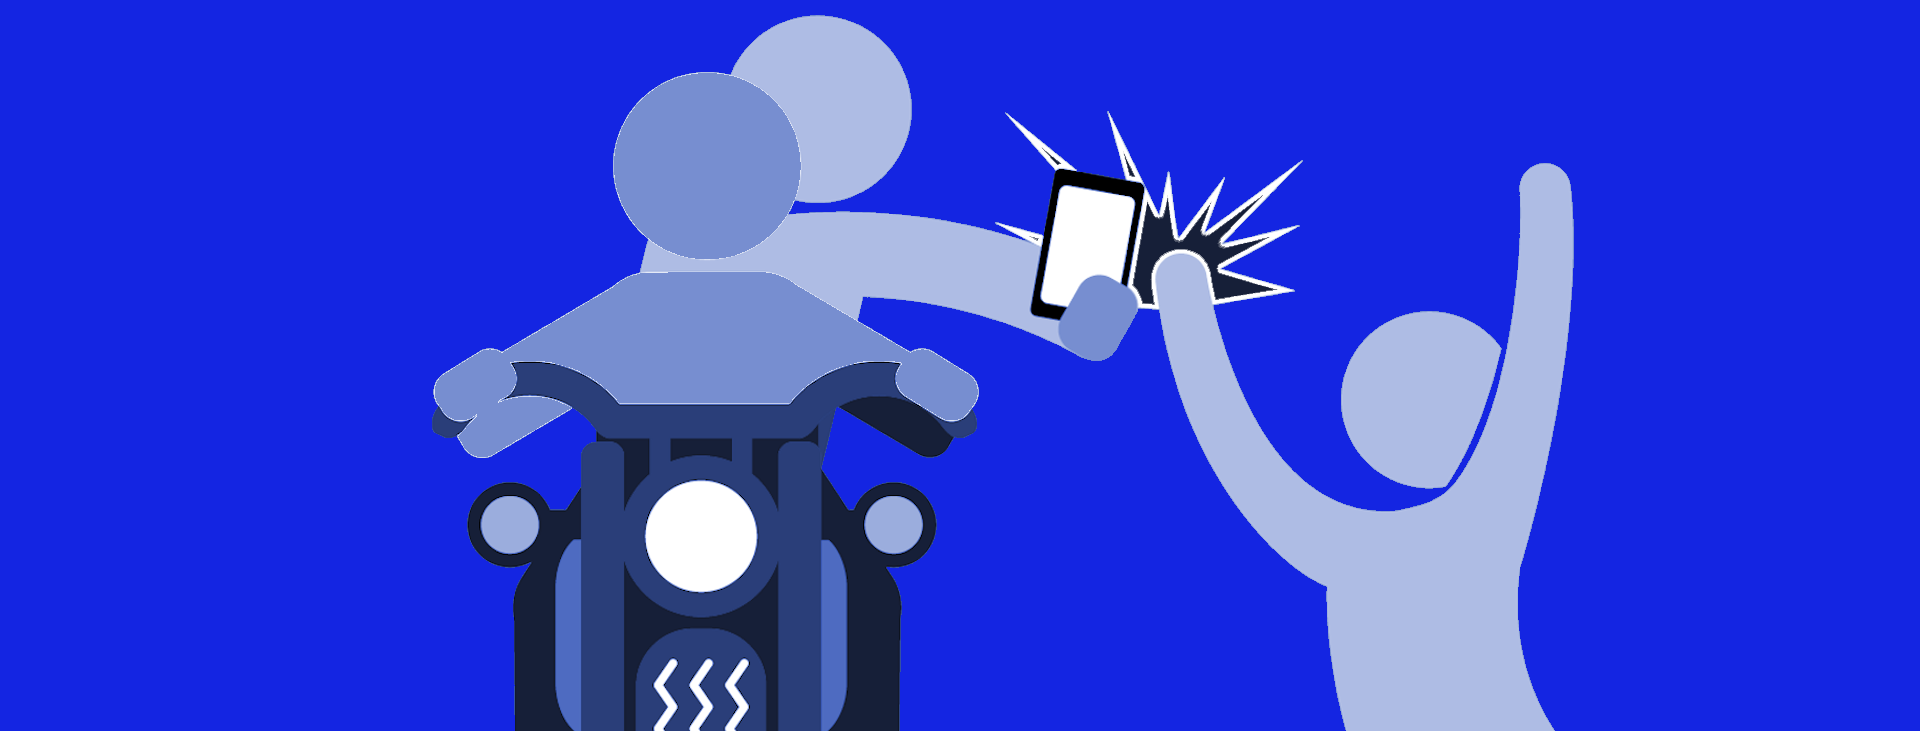 mobile phone theft